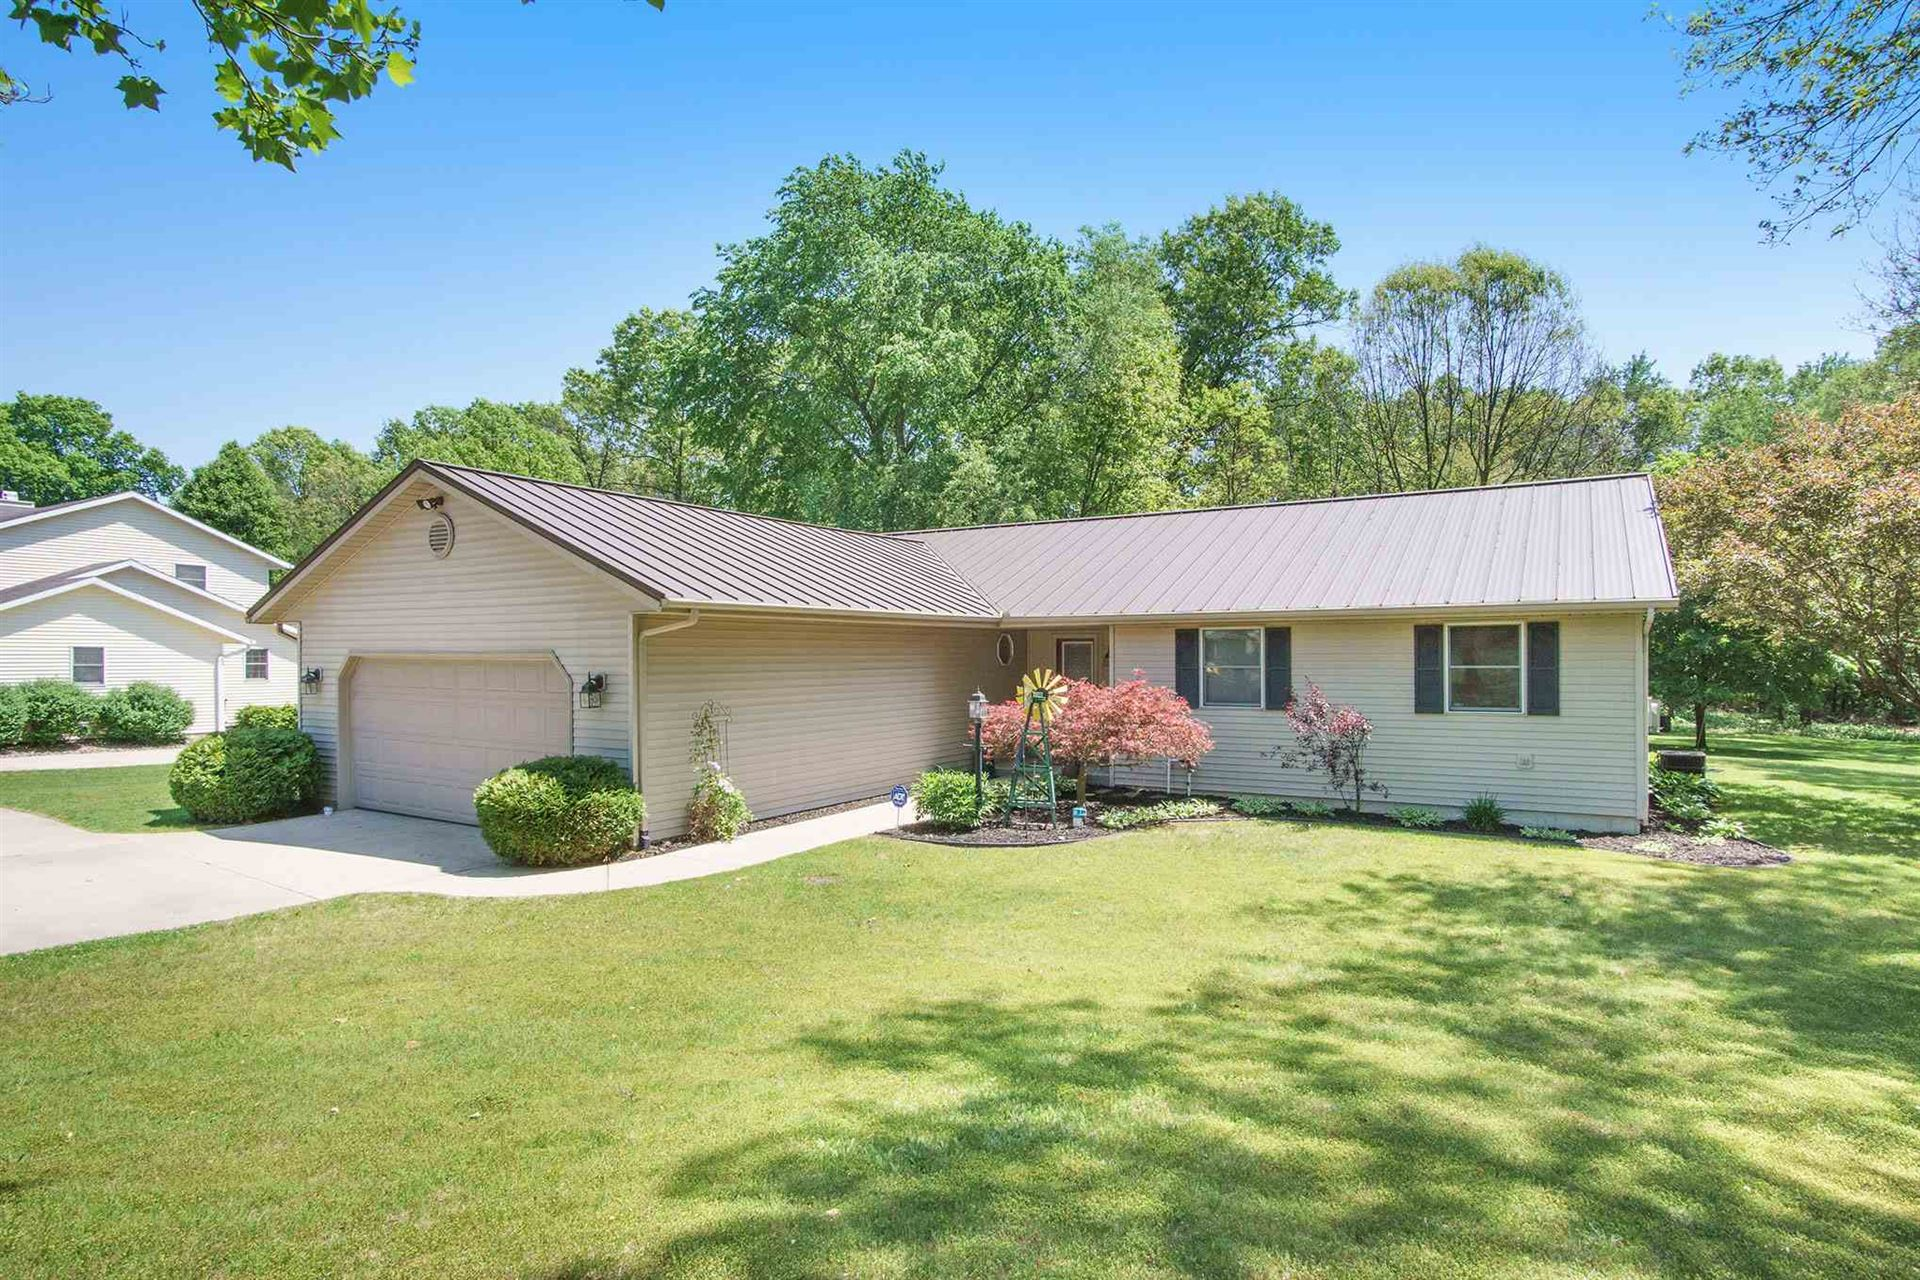 19470 STATE LINE Road, South Bend, IN 46637 - #: 202020407